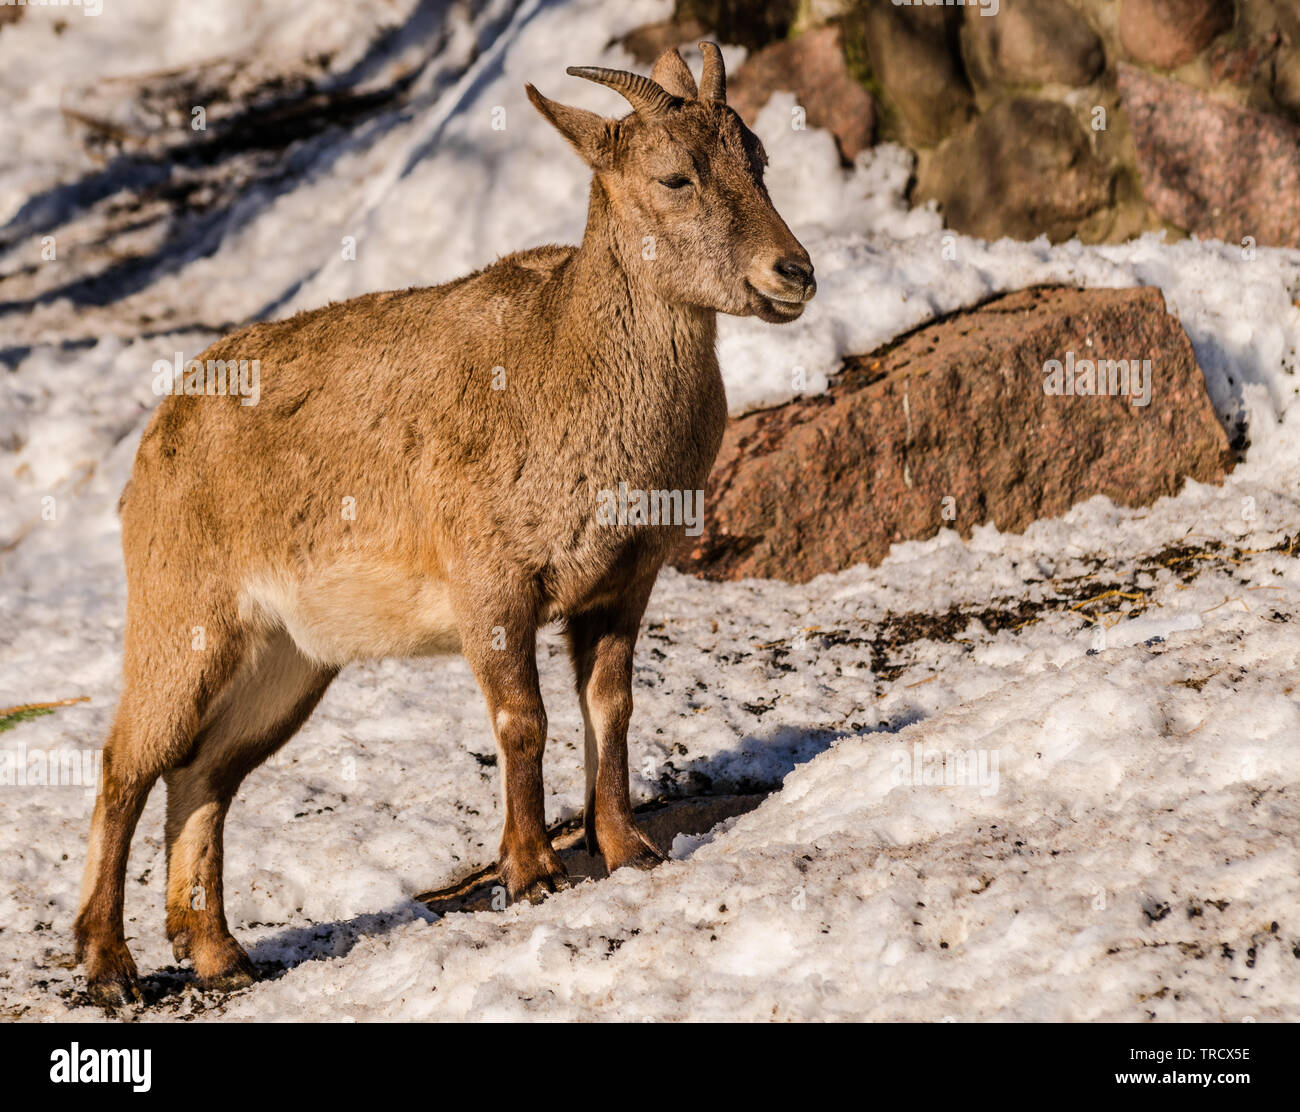 East Caucasian tur or Daghestan tur (Capra caucasica cylindricornis) female with rocks and snow background with sunlight - Stock Image